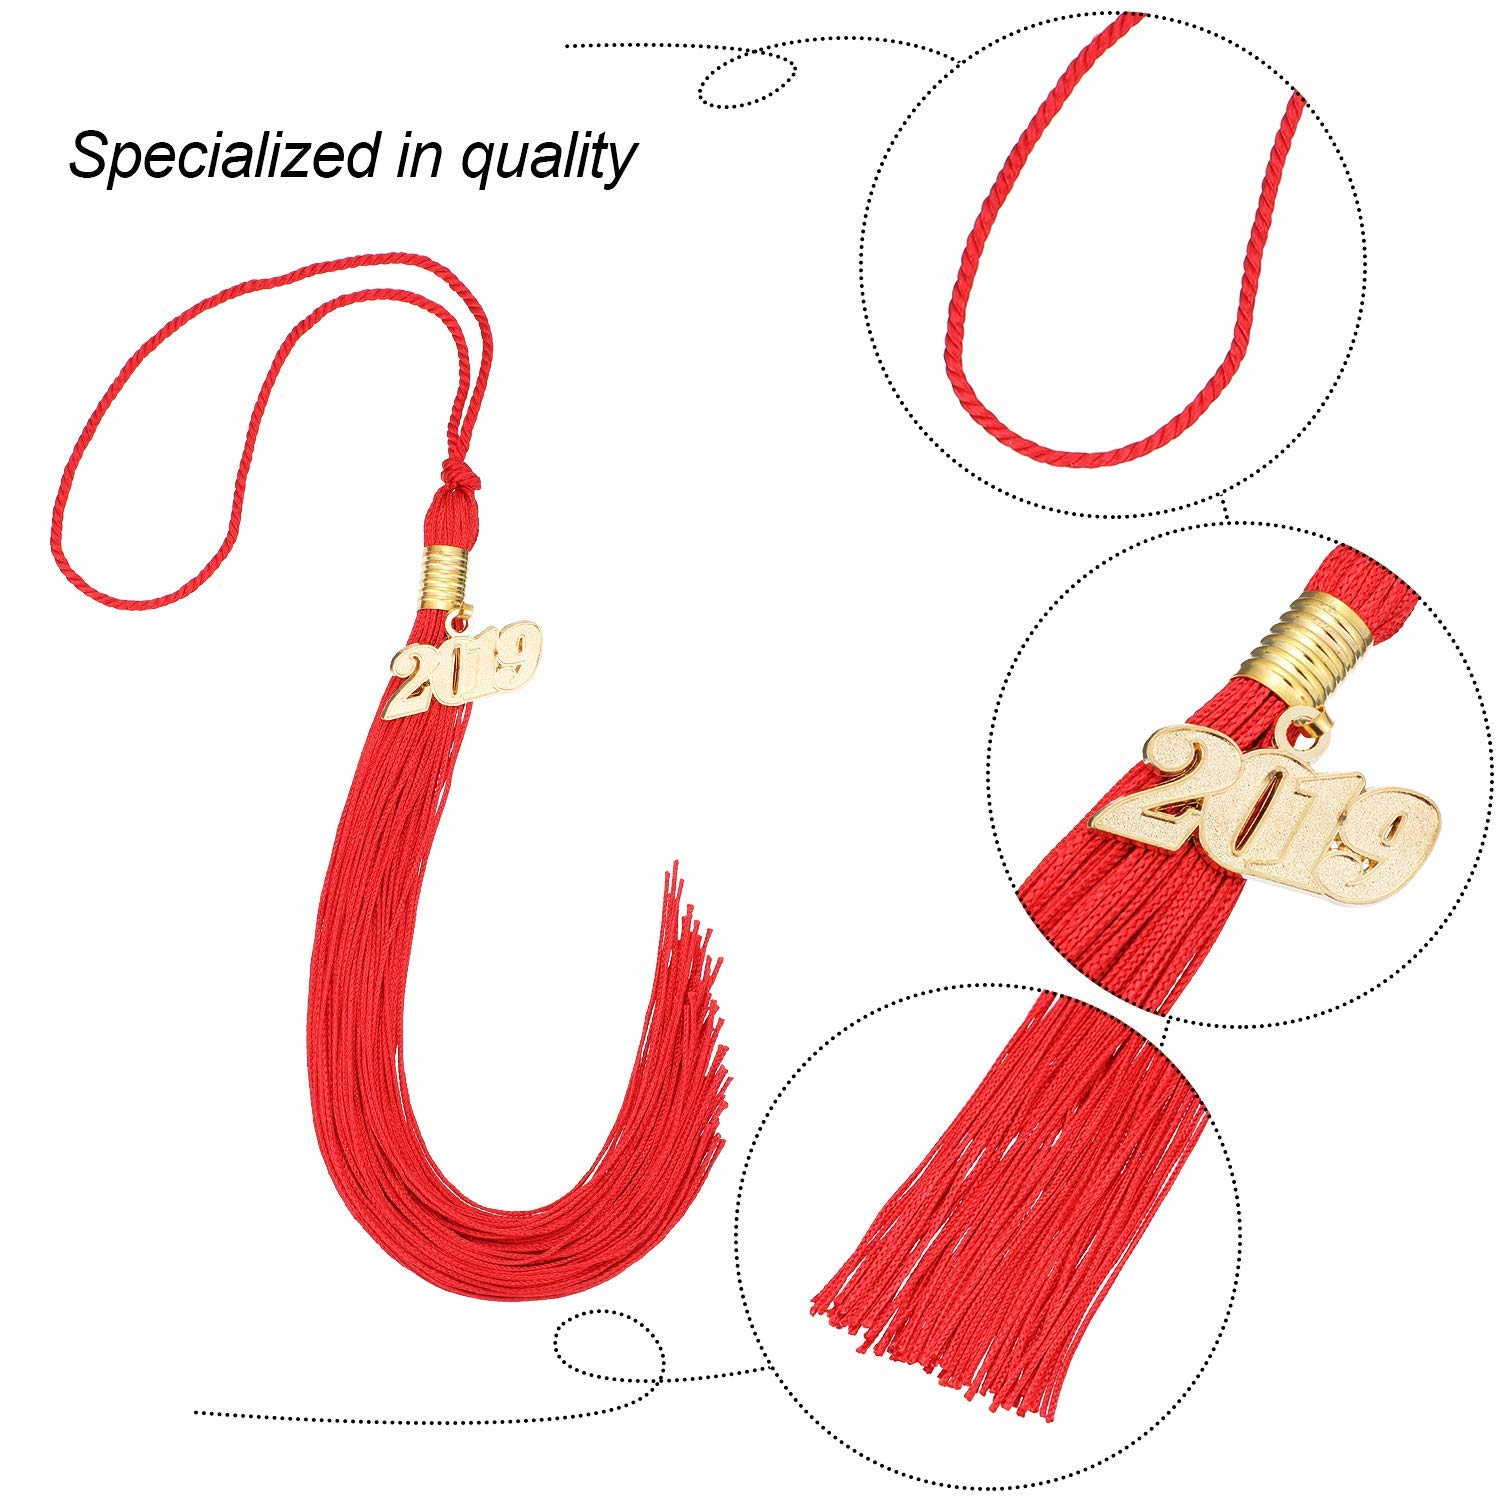 Red 10 Pieces Graduation Tassel Graduation Cap Tassel with 2019 Year Charm for Graduation Parties 9.4 Inches